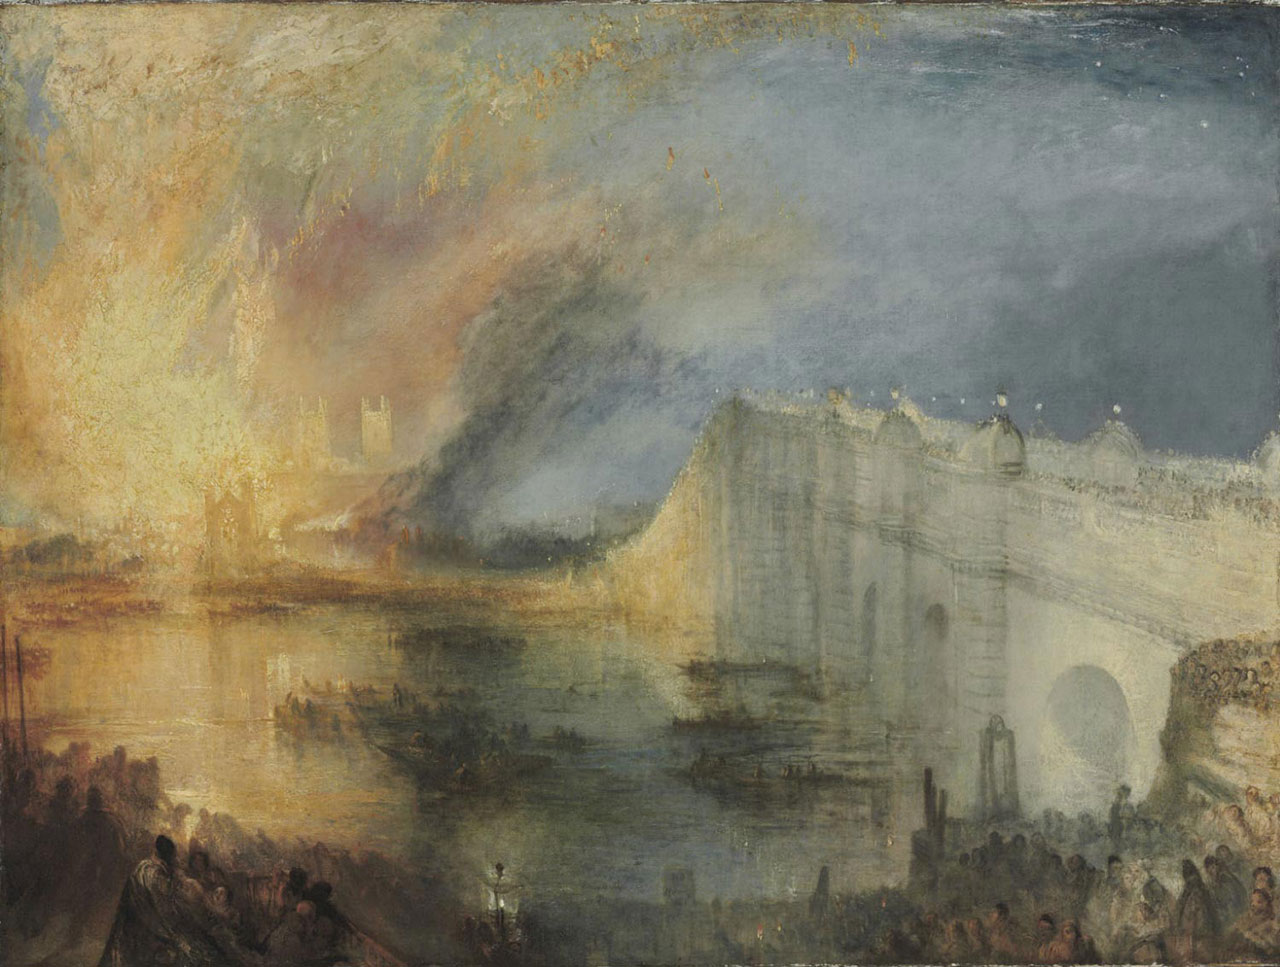 "JMW Turner, ""The Burning of the Houses of Lords and Commons, October 16, 1834"" (1834–35), oil on canvas, 36 1/4 x 48 1/2 in (92.1 x 123.2 cm) (via philamuseum.org)"